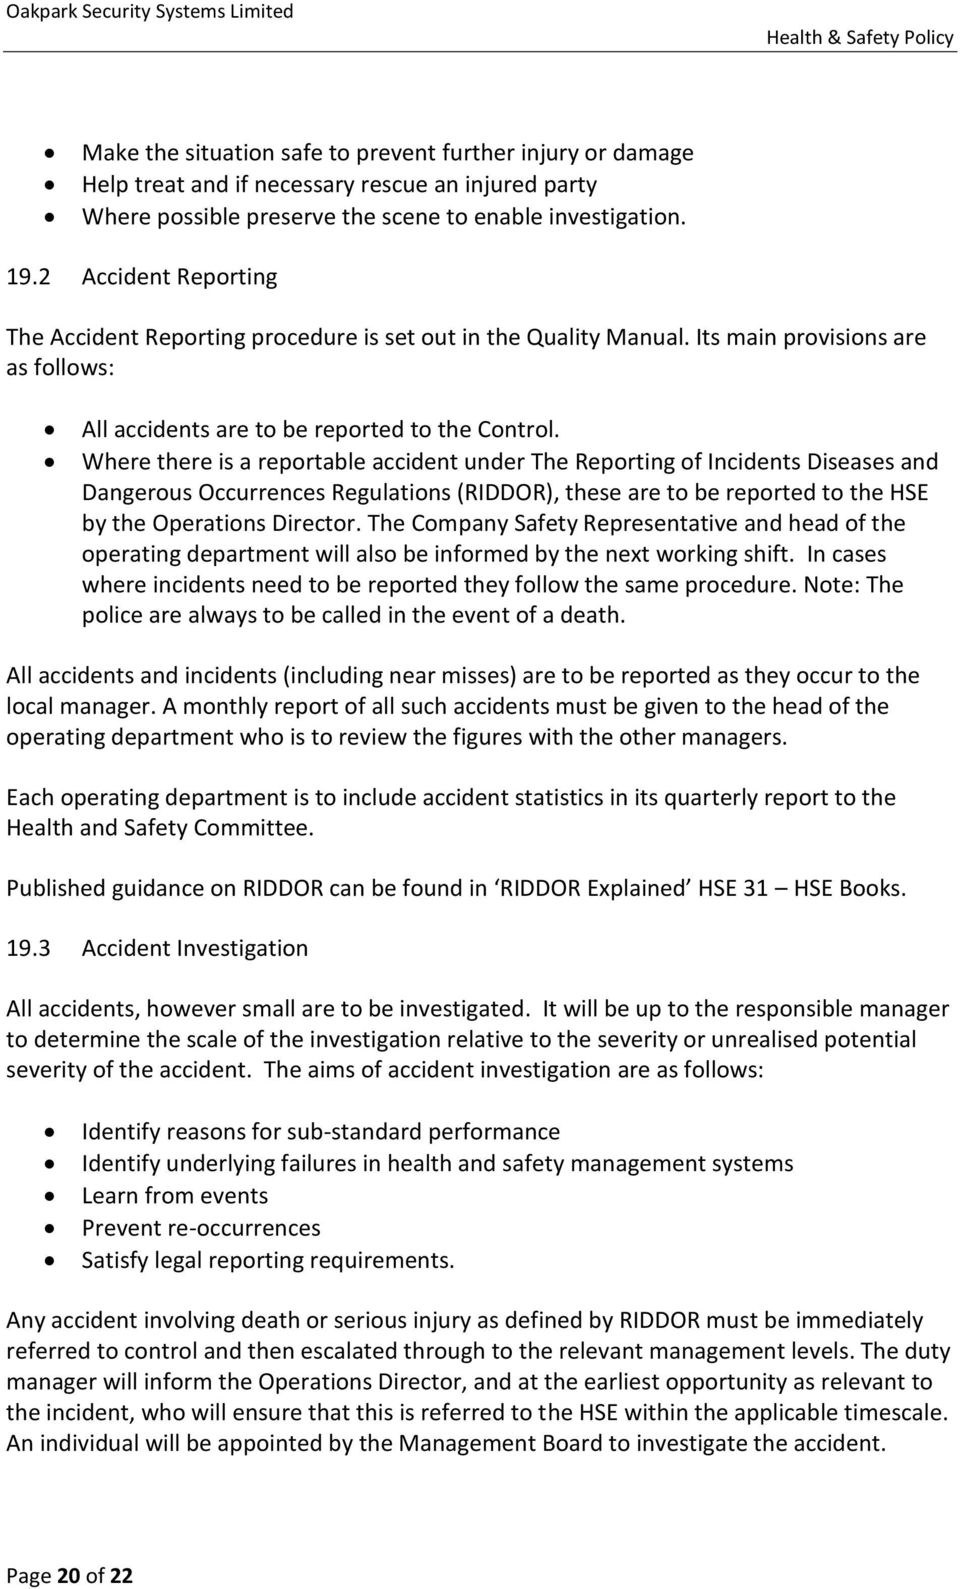 Where there is a reportable accident under The Reporting of Incidents Diseases and Dangerous Occurrences Regulations (RIDDOR), these are to be reported to the HSE by the Operations Director.